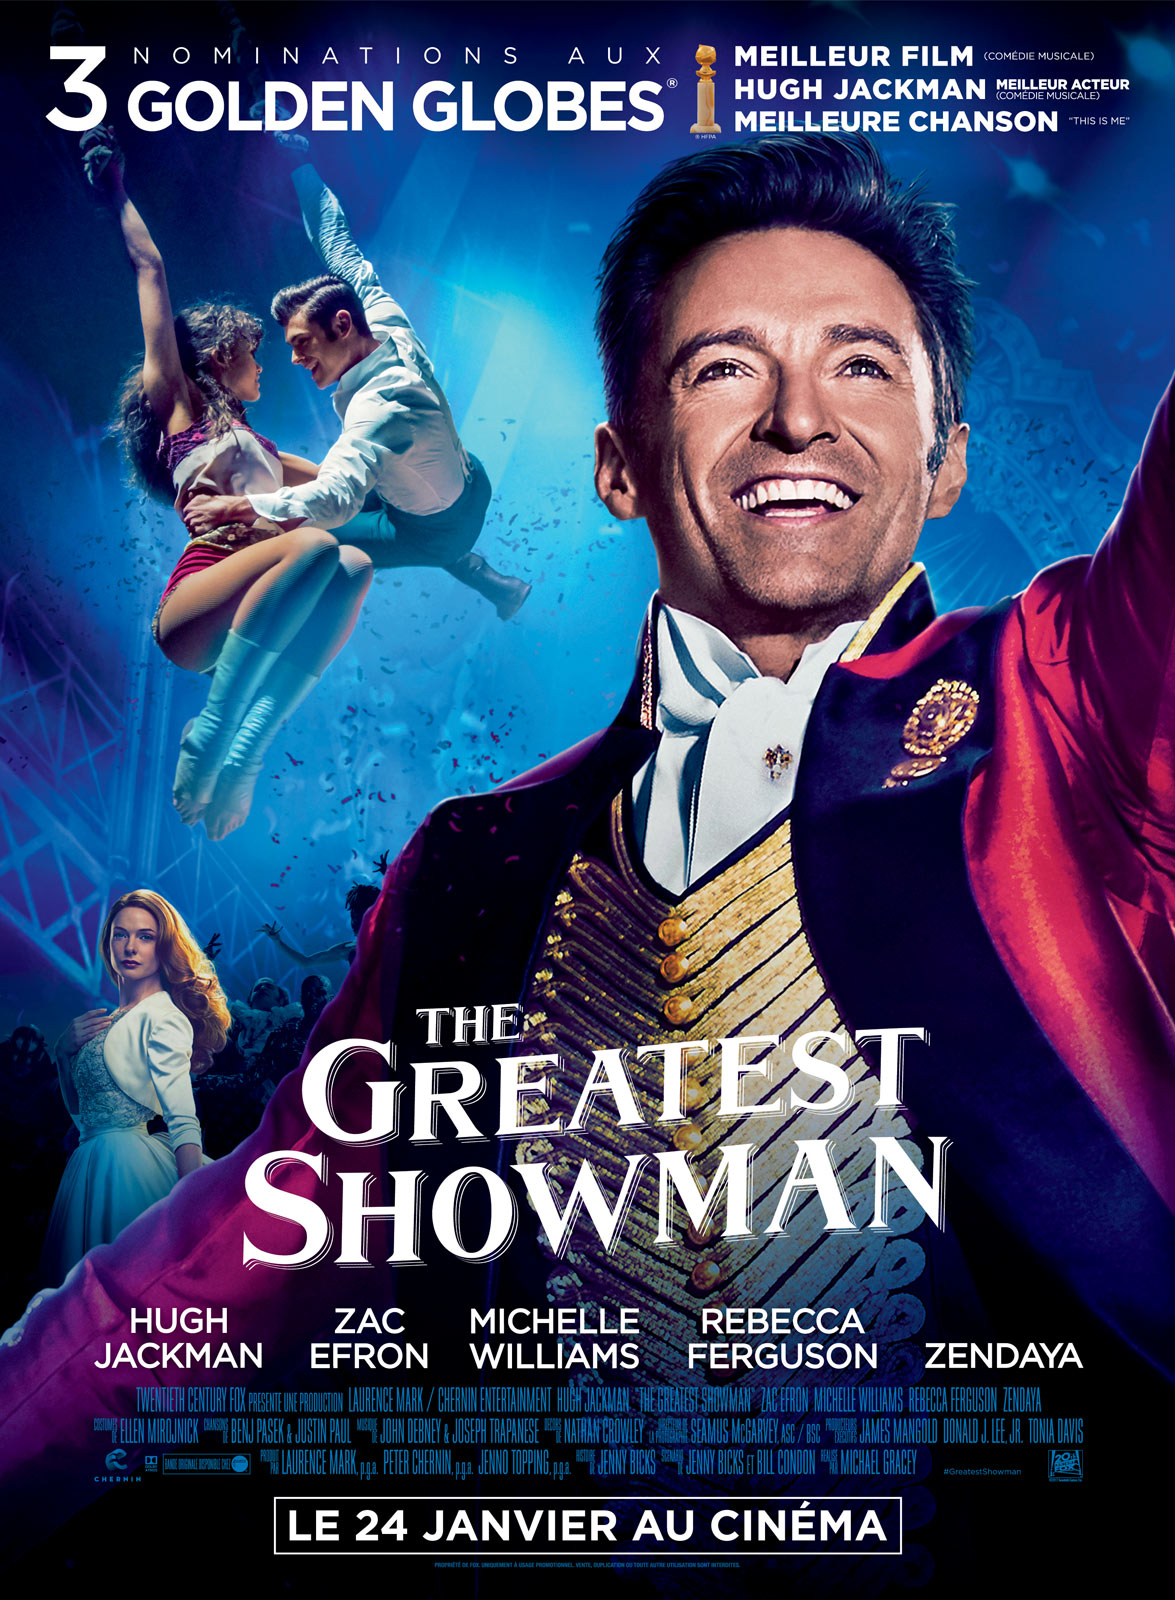 The Greatest Showman FRENCH WEBRIP 1080p 2018